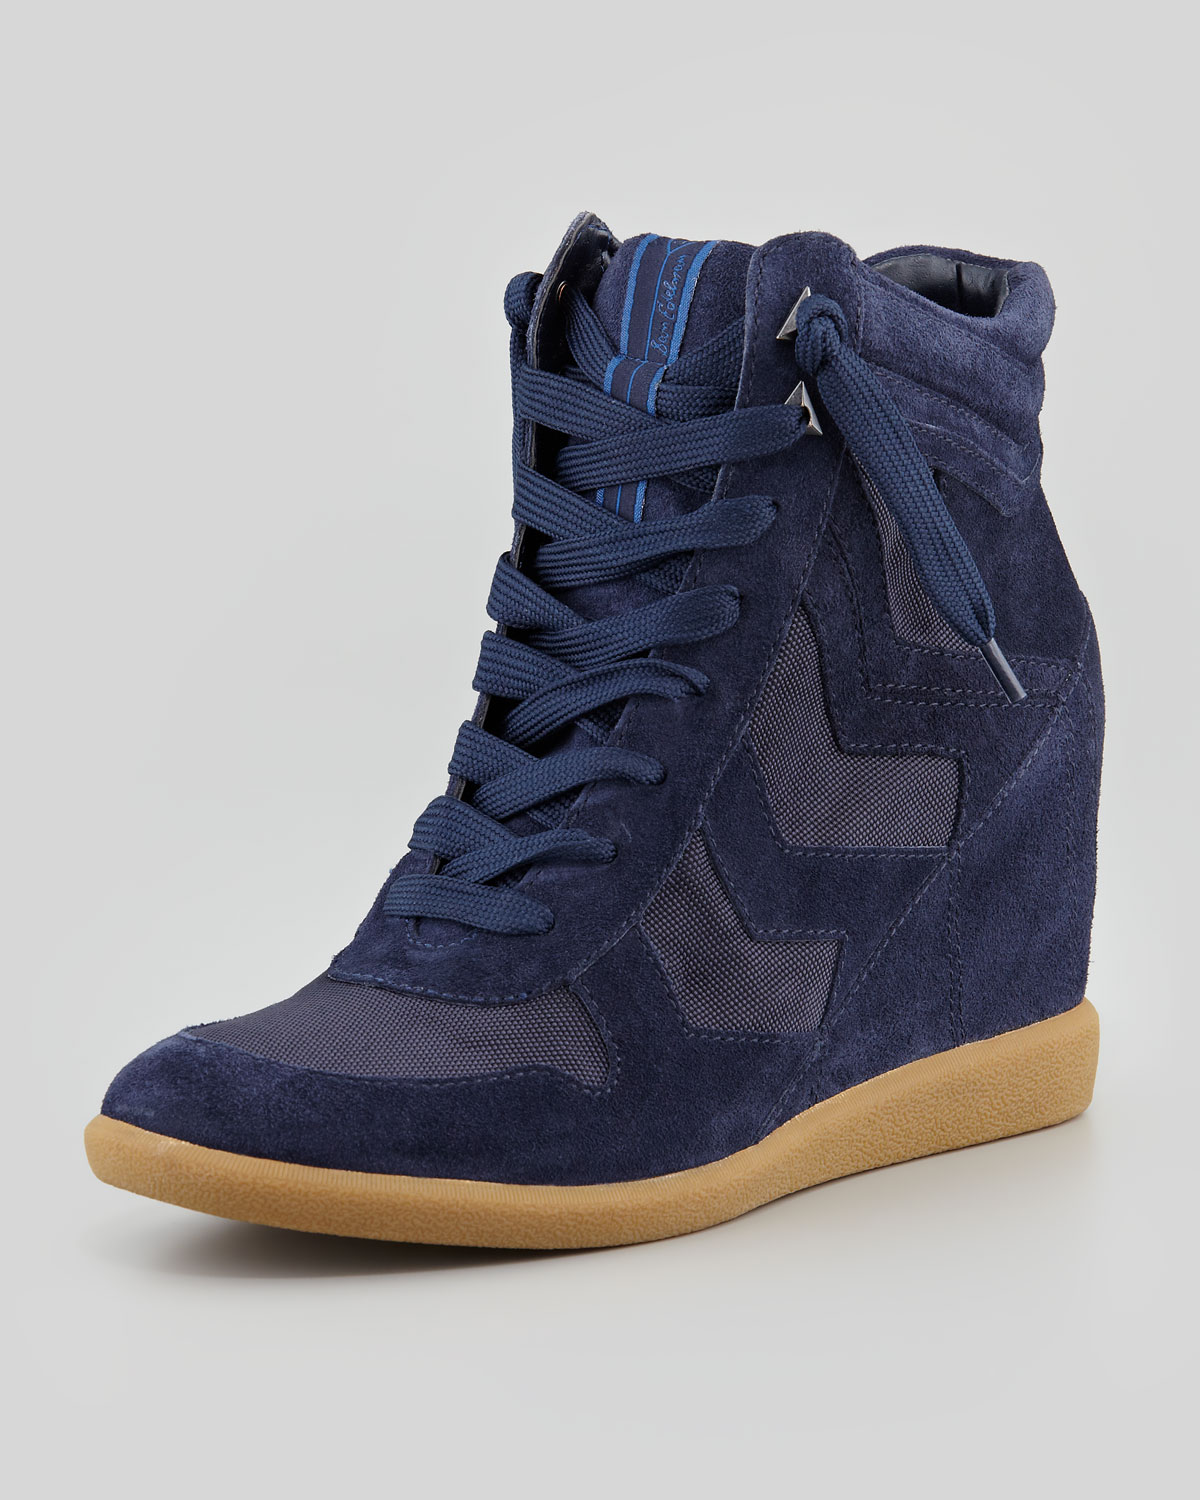 63677c4f0bee Lyst - Sam Edelman Bennett Velour Hidden Wedge Sneaker in Blue